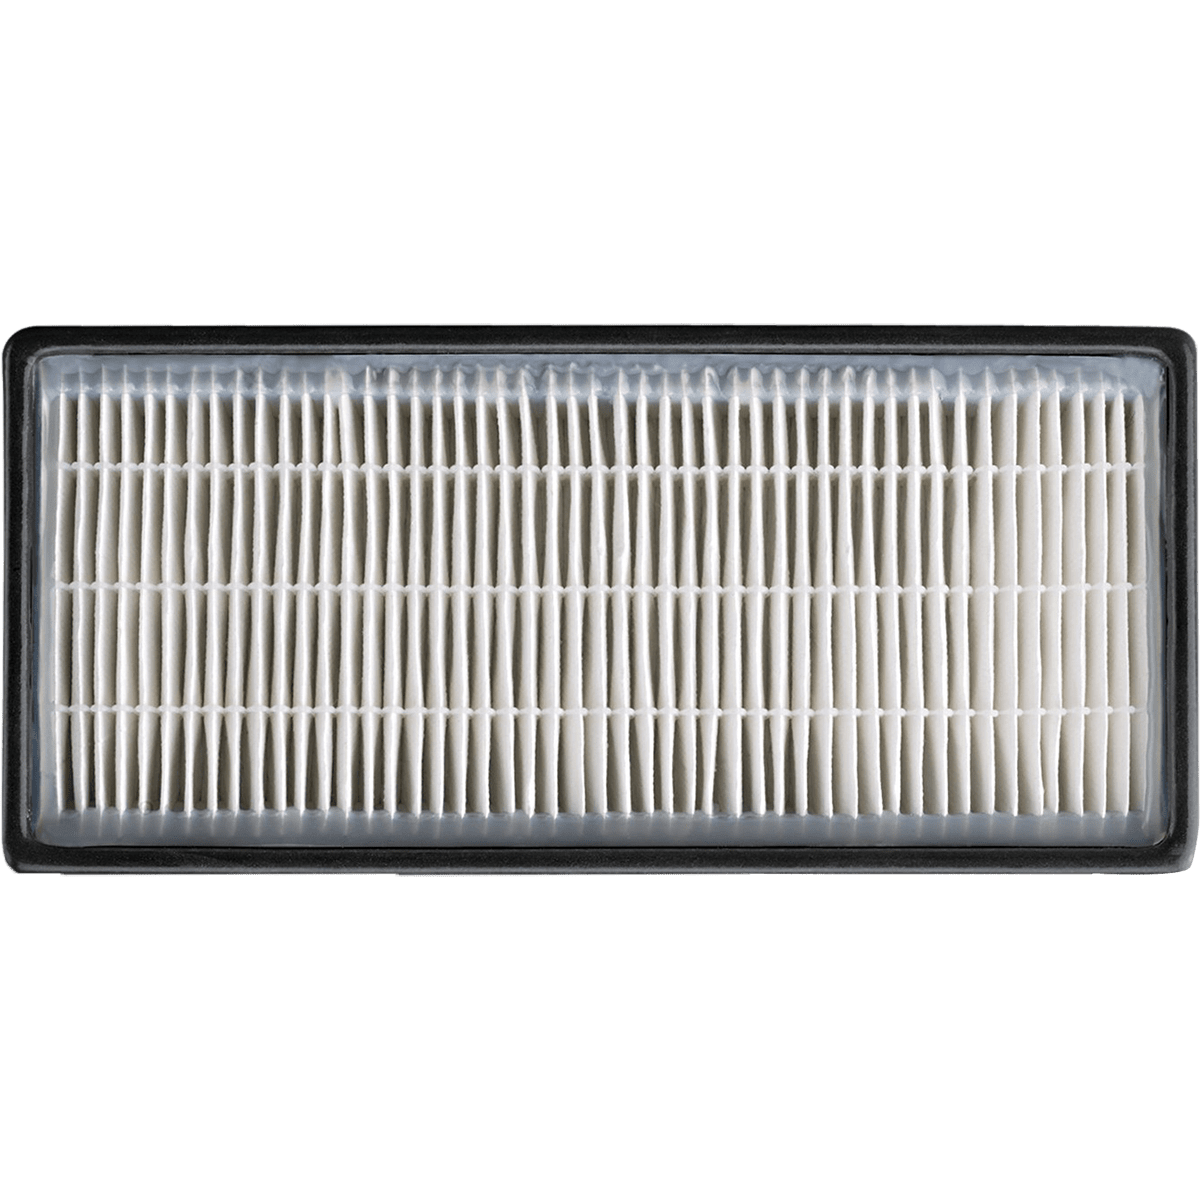 Honeywell HEPA Clean Replacement Filter C ho643